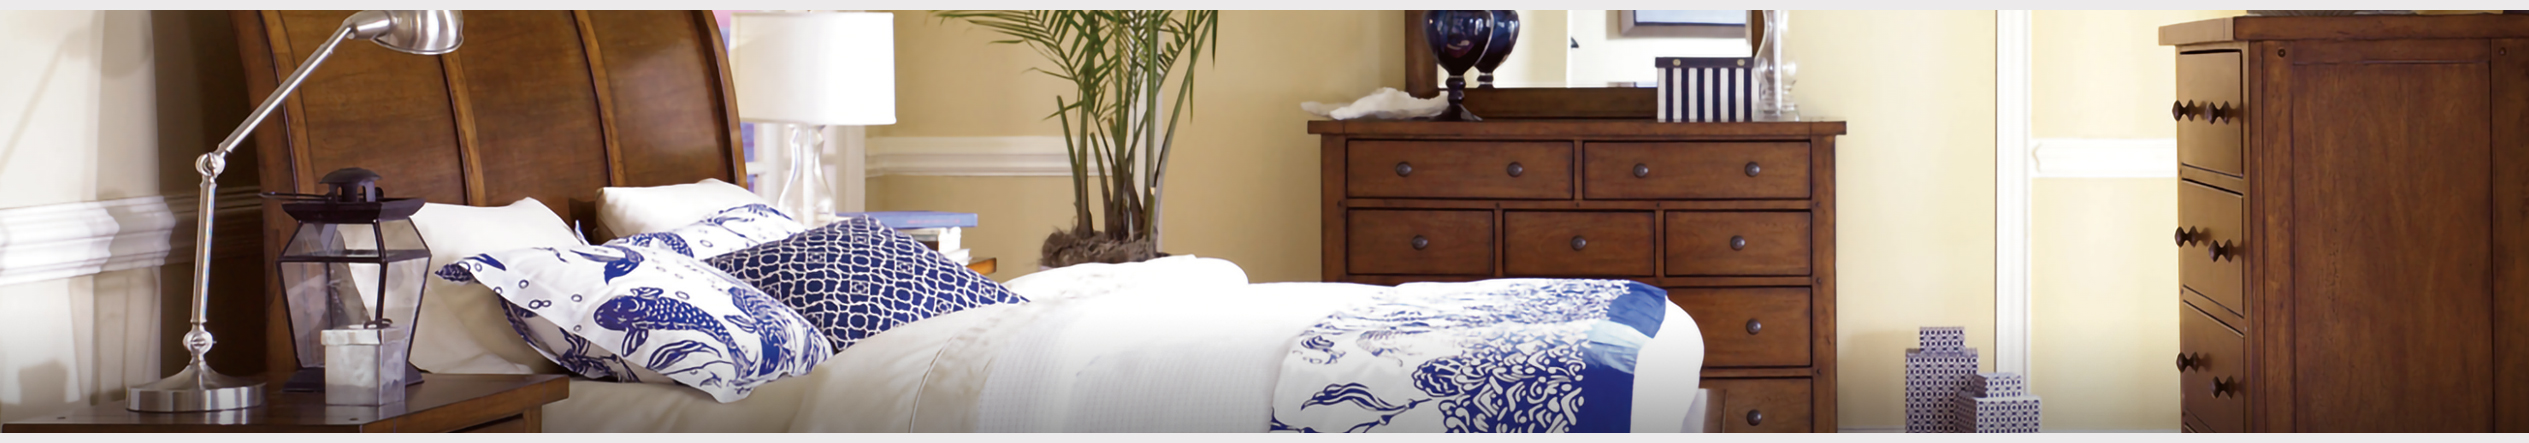 Dressers for Sale in MA, NH and RI at Jordan\'s Furniture